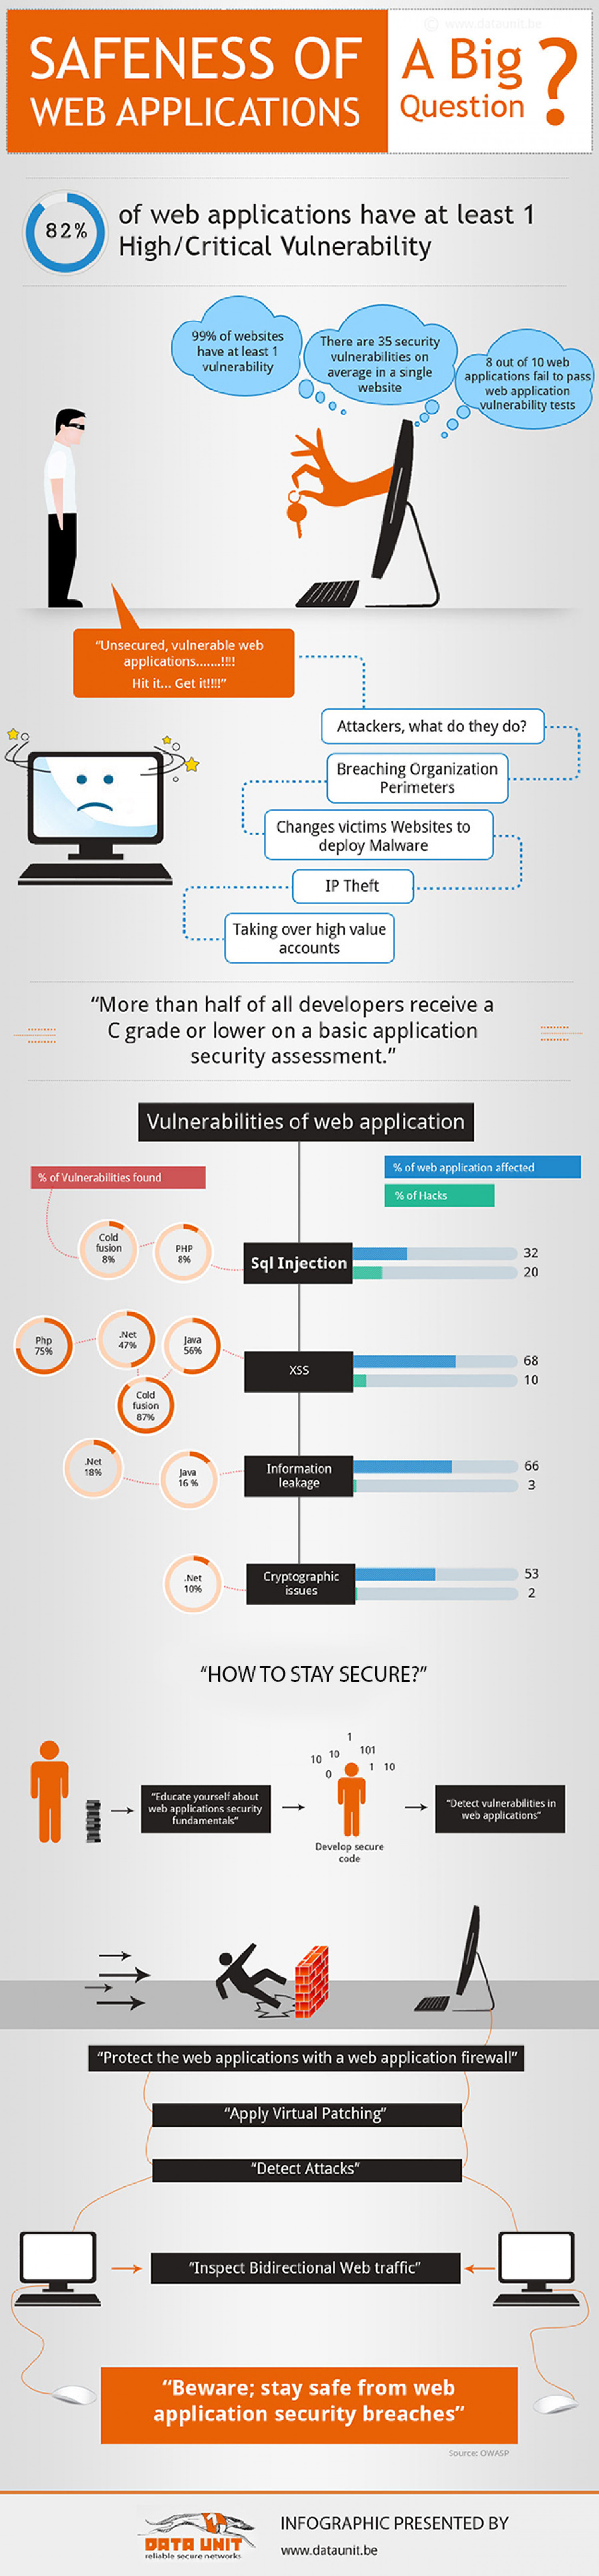 An Infographic on the safeness of web applications Infographic